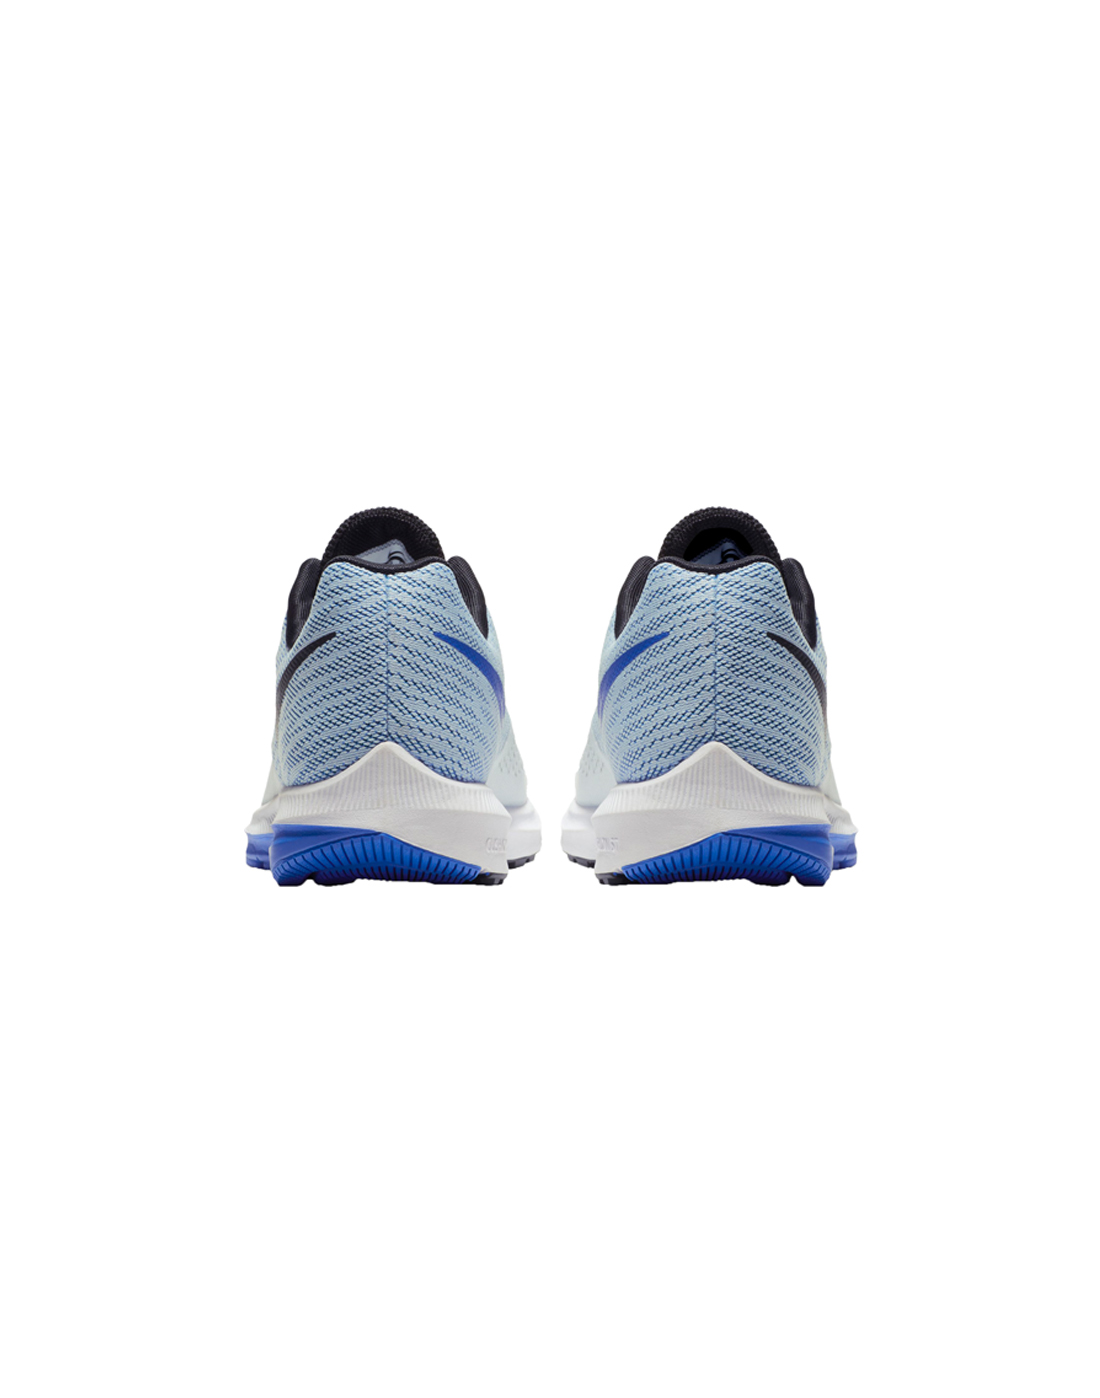 709eff079 Nike Mens Air Zoom Winflo 4 | Life Style Sports